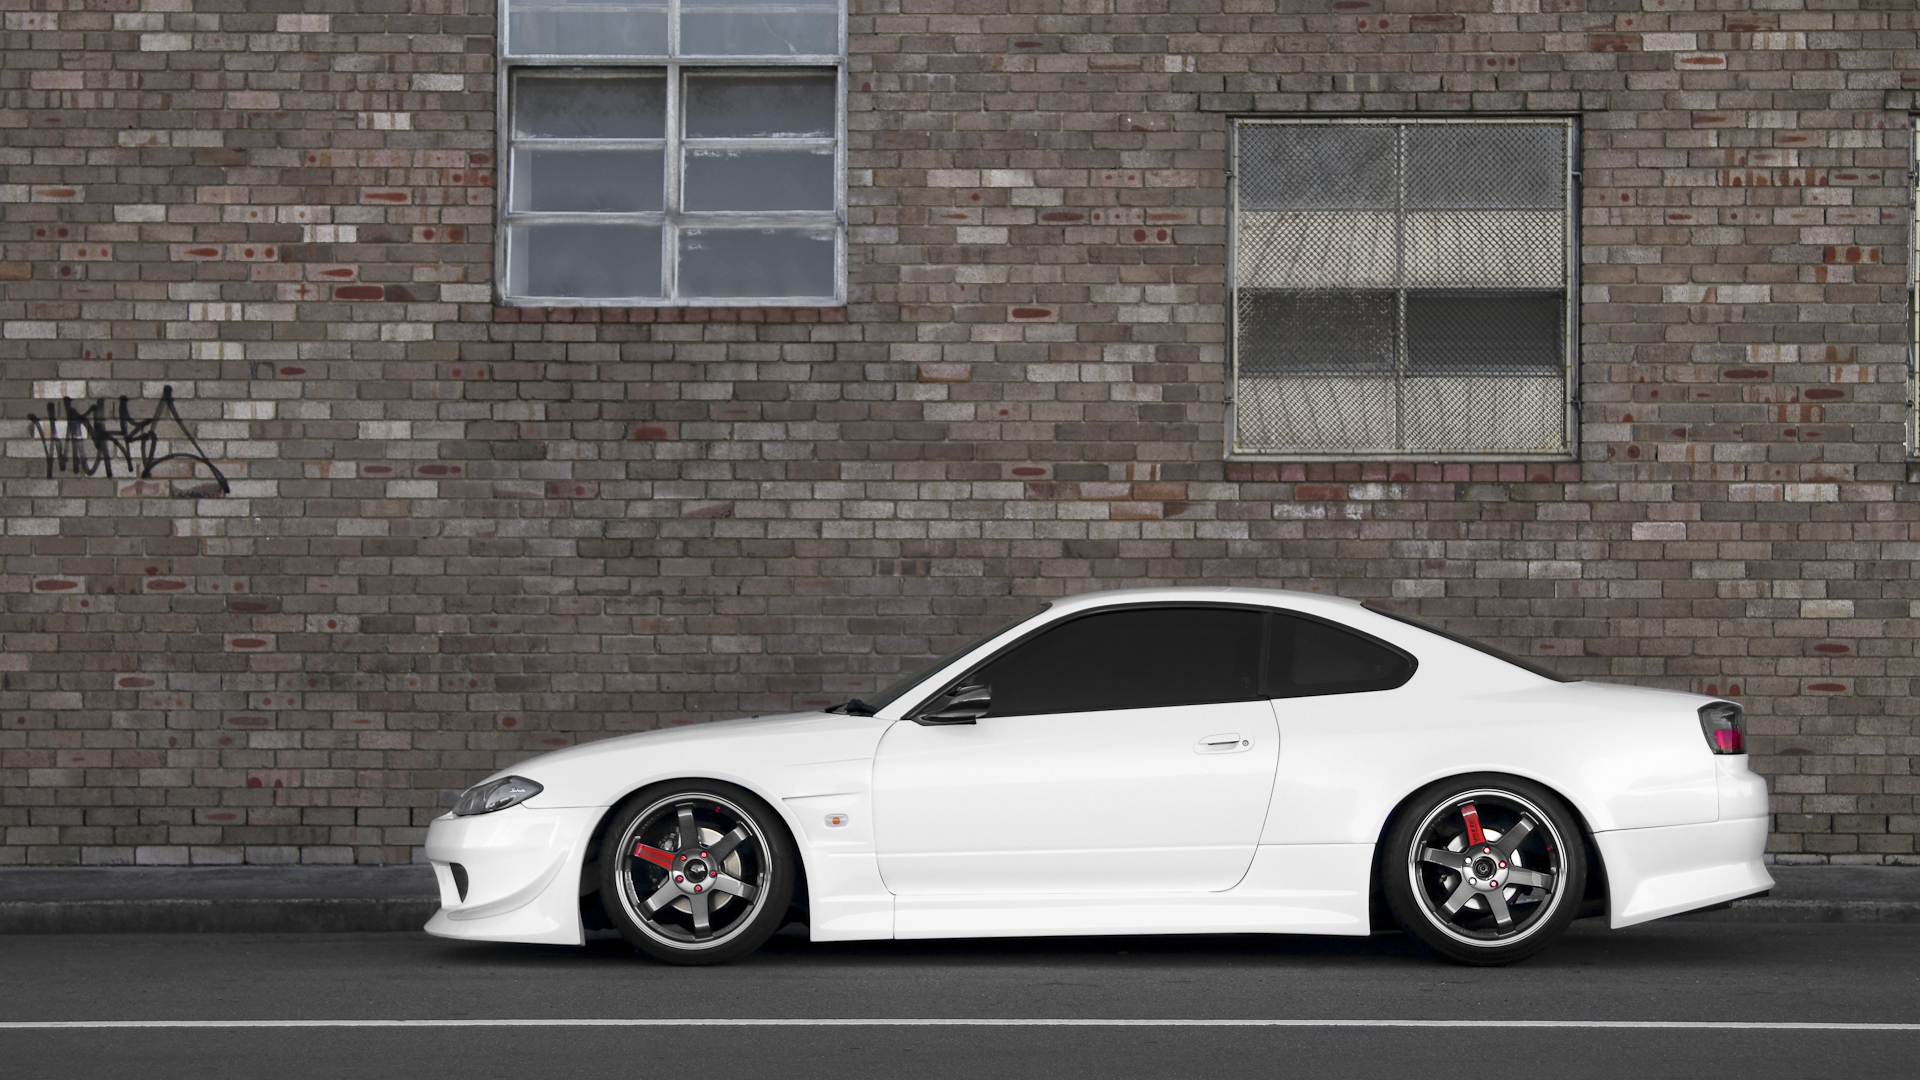 nissan, silvia, s15 Full HD Wallpaper and Background Image ...